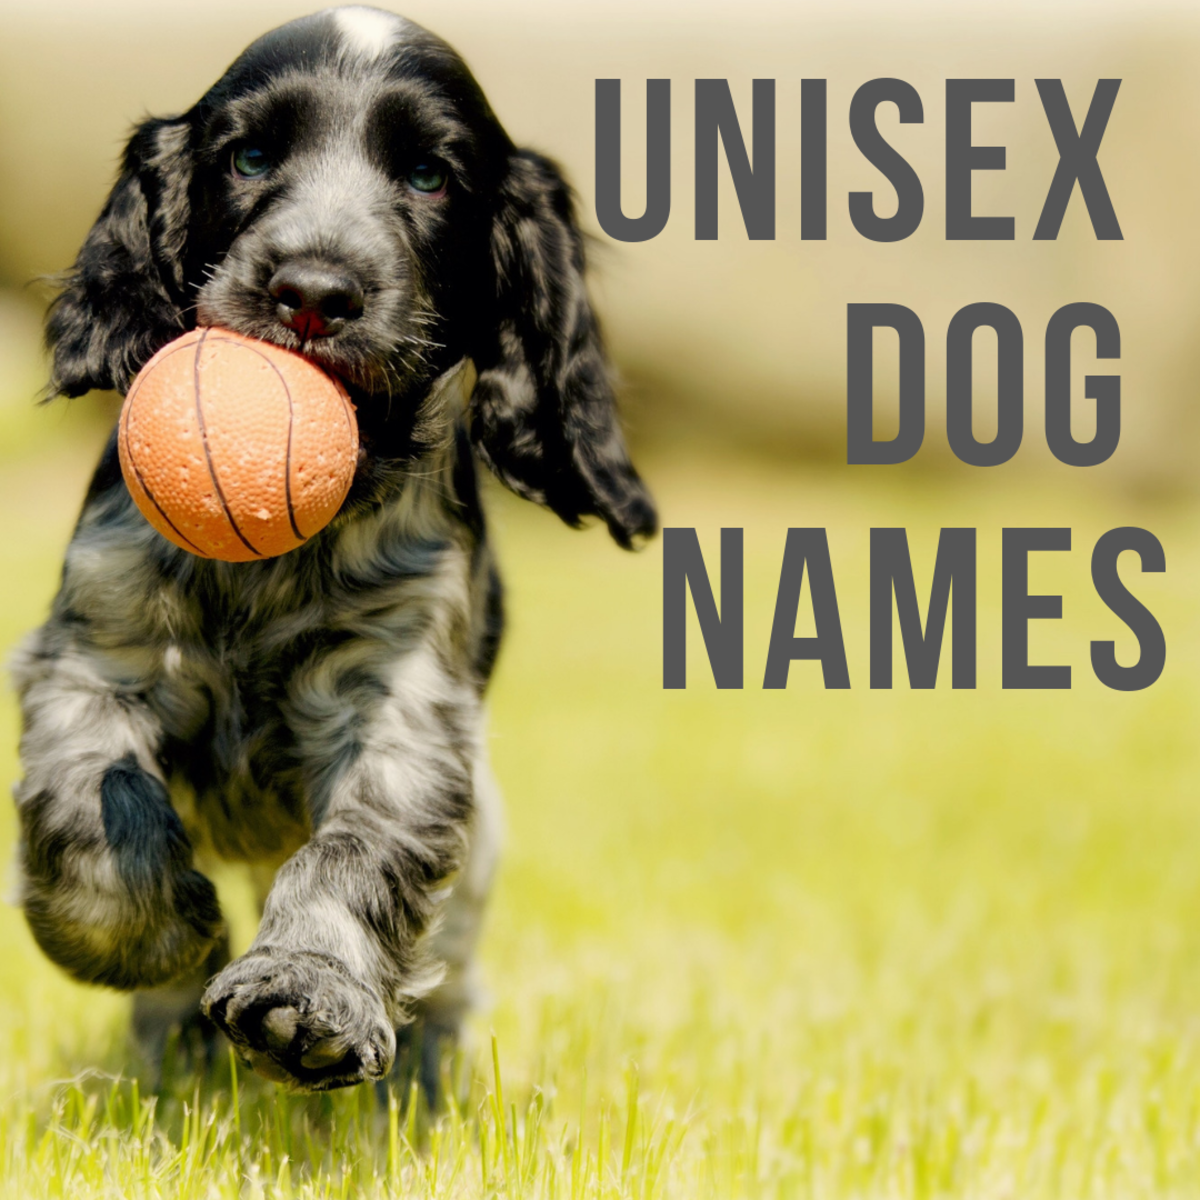 100 Unisex Dogs Names That Work For Both Male And Female Pets